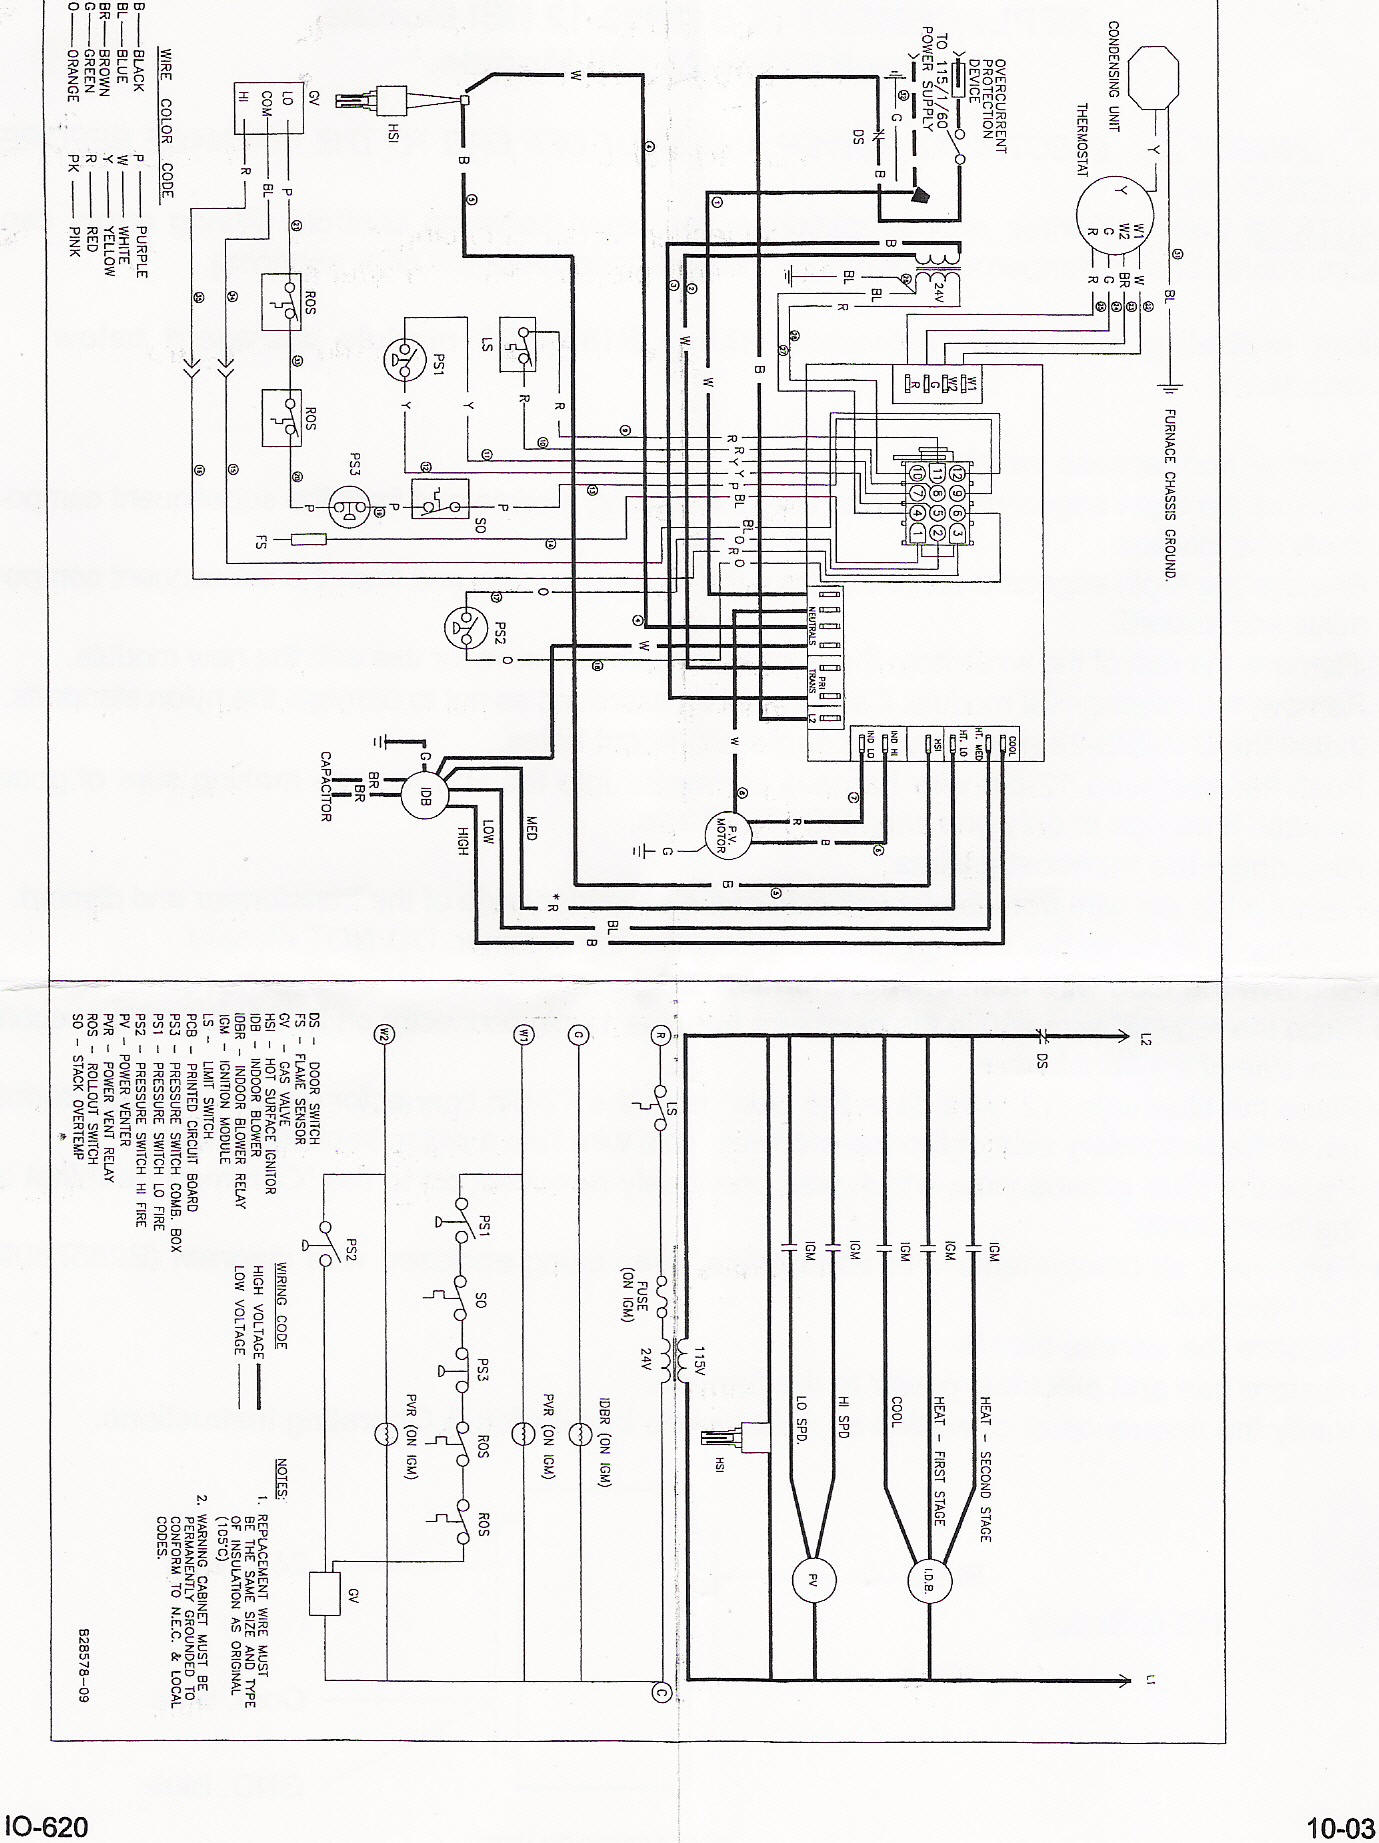 goodma2 instr goodman control board b18099 23 instructions  at sewacar.co